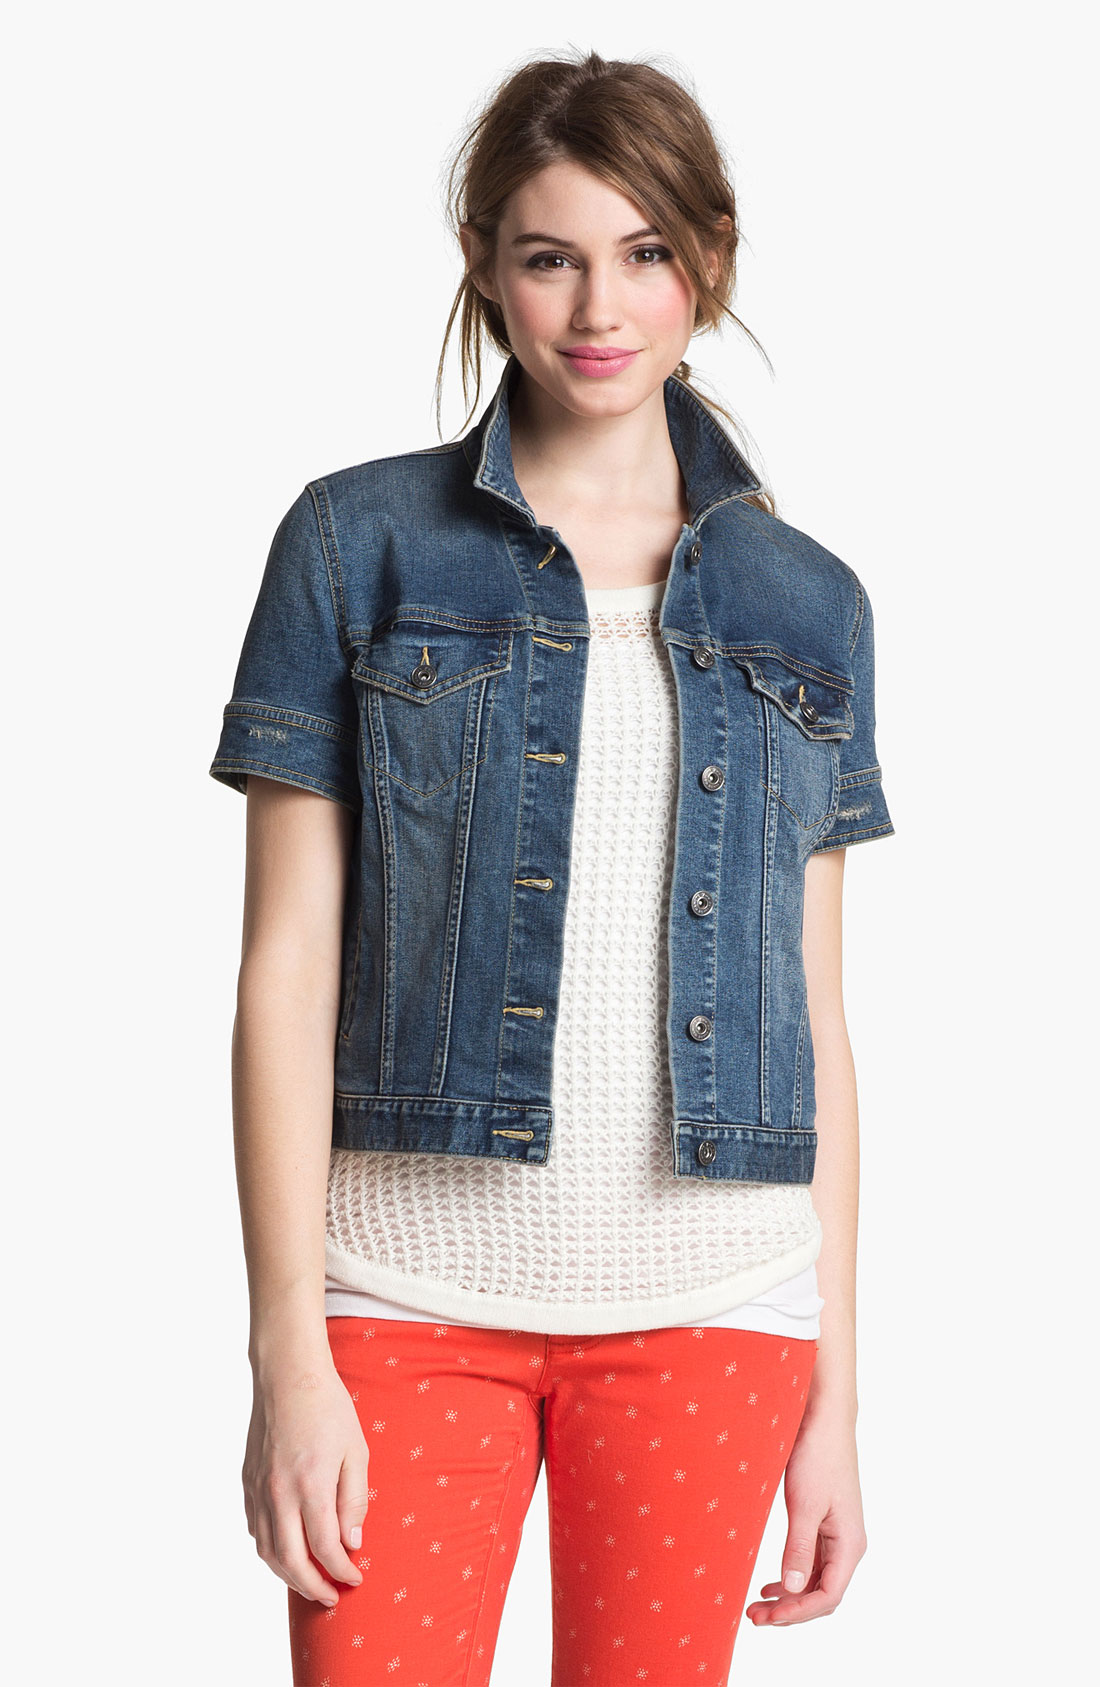 Find great deals on eBay for short sleeve denim jacket. Shop with confidence.